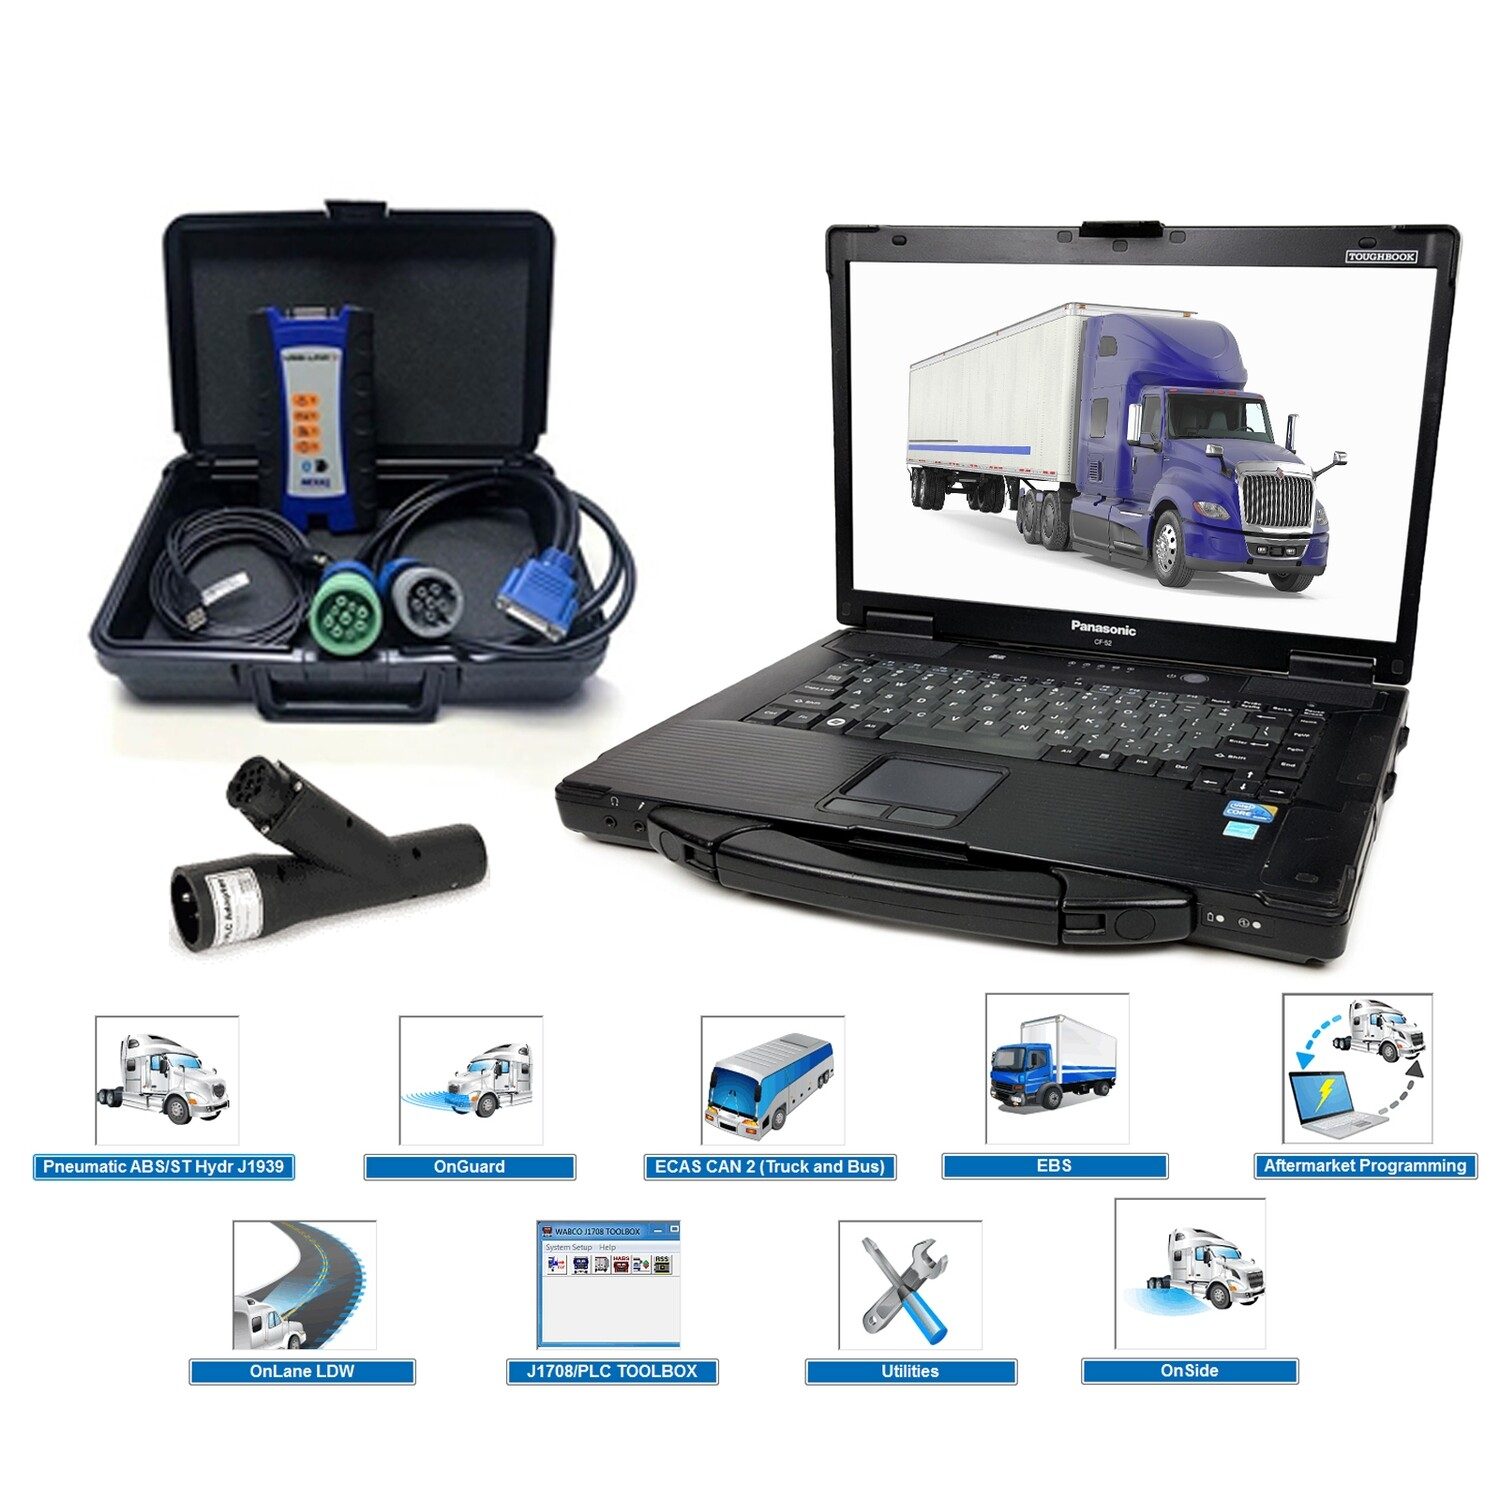 Oem Diagnostics Diesel ABS Software Nexiq Toughbook Bundle Meritor Wabco Haldex Bendix ACOM Wabash